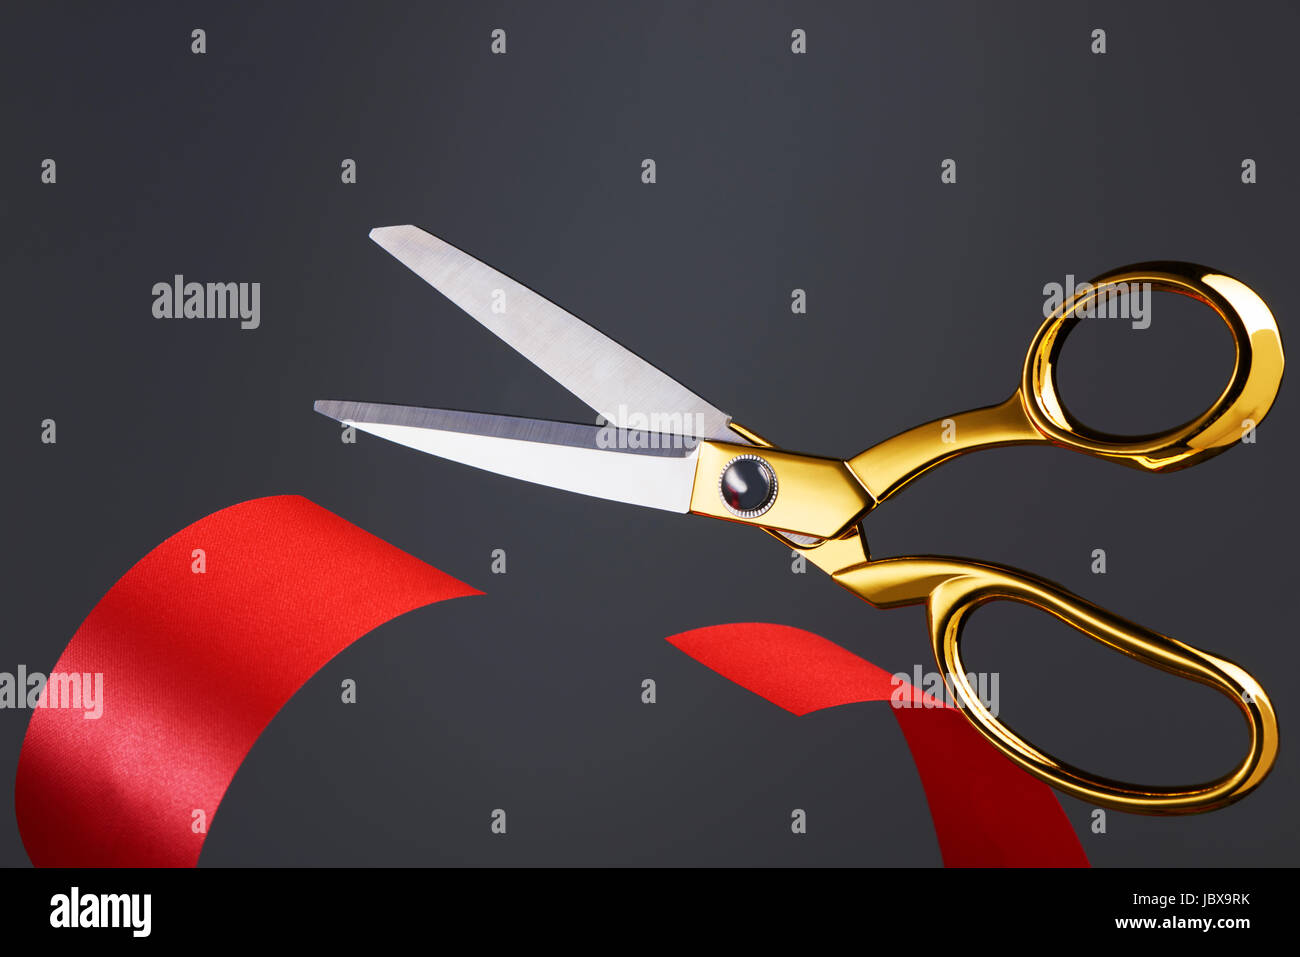 Golden scissors cutting red ribbon/ tape - Stock Image